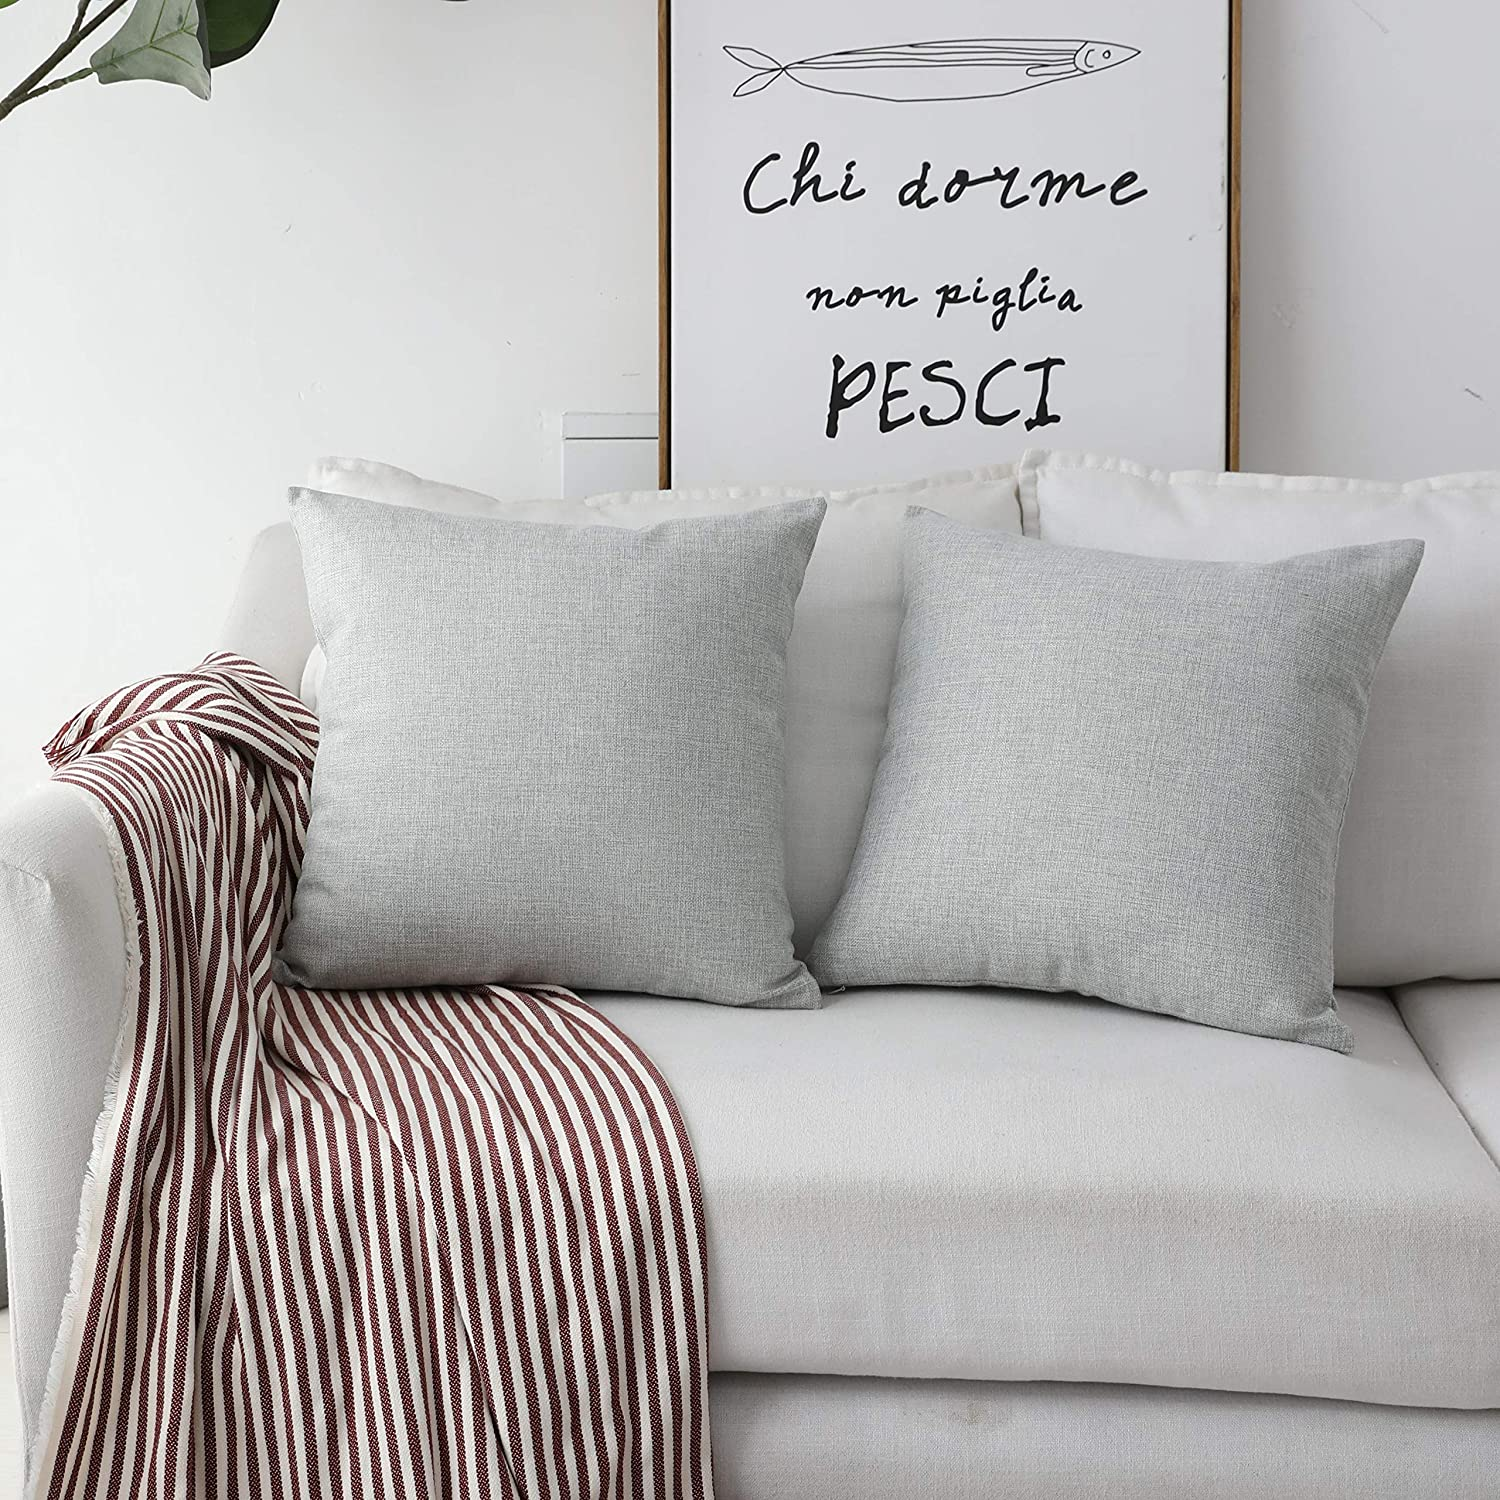 Home Brilliant Set of 2 Couch Throw Pillows Linen Decorative Pillow Covers for Couch Sofa, 20x20 inches(50cm), Light Grey